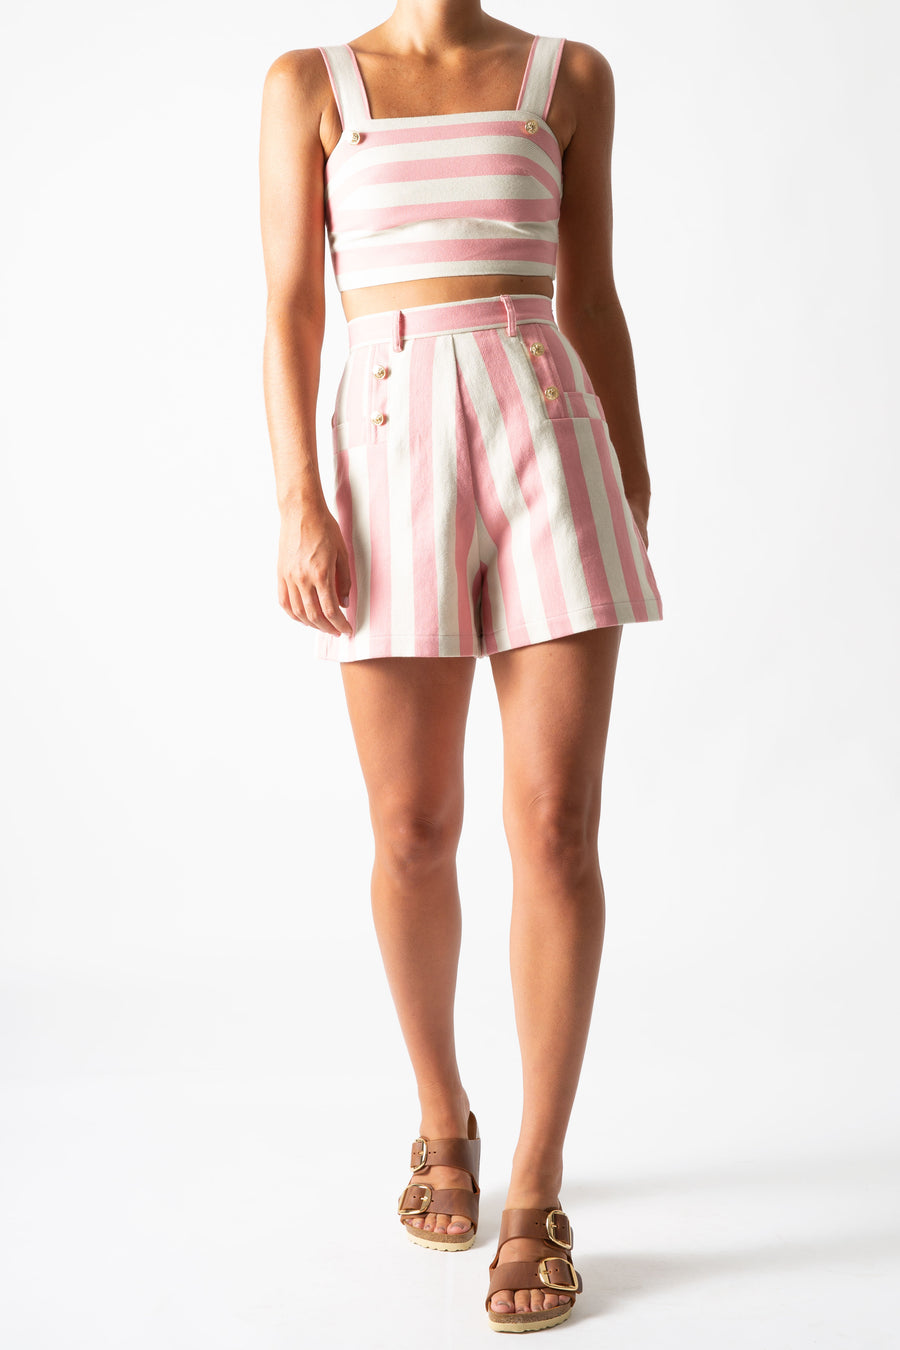 This is a photo of a woman wearing a matching two-piece suit with shorts and a cropped top,. The outfit is pink and neutral thick stripes with gold buttons.